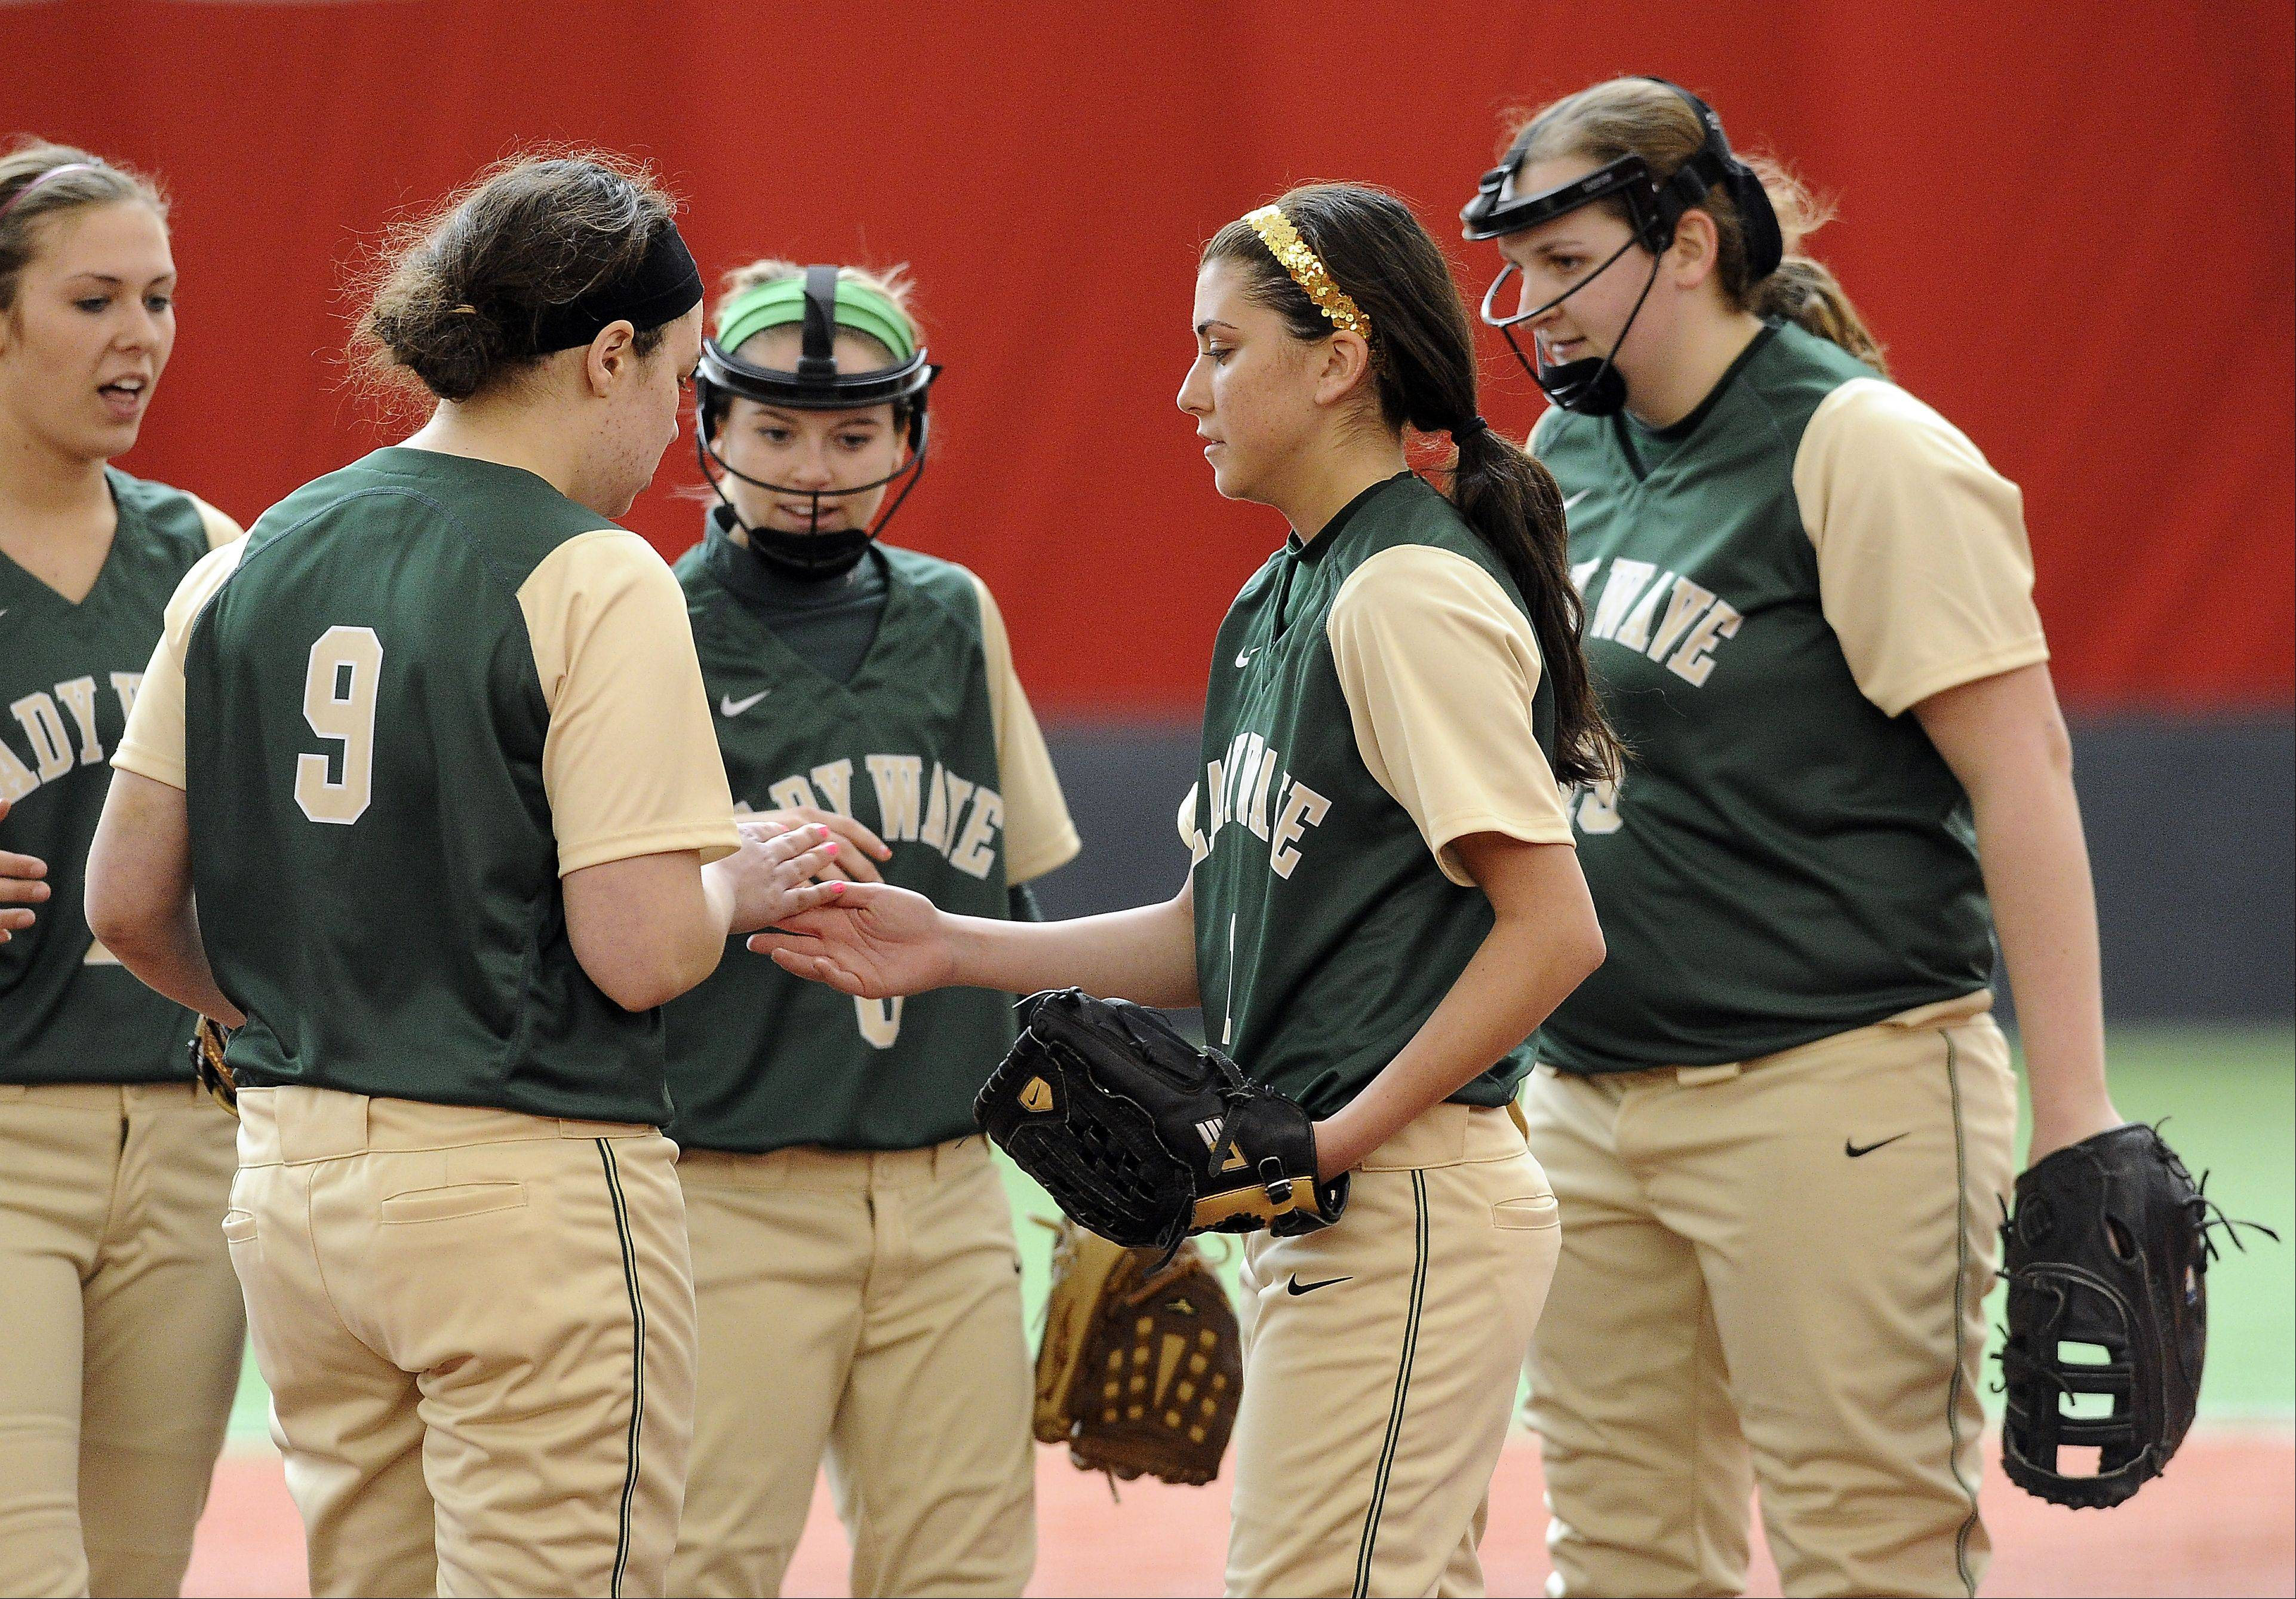 St. Edward's softball team comes together in the seventh inning of its 10-4 win over Freeport in Rosemont on Monday.